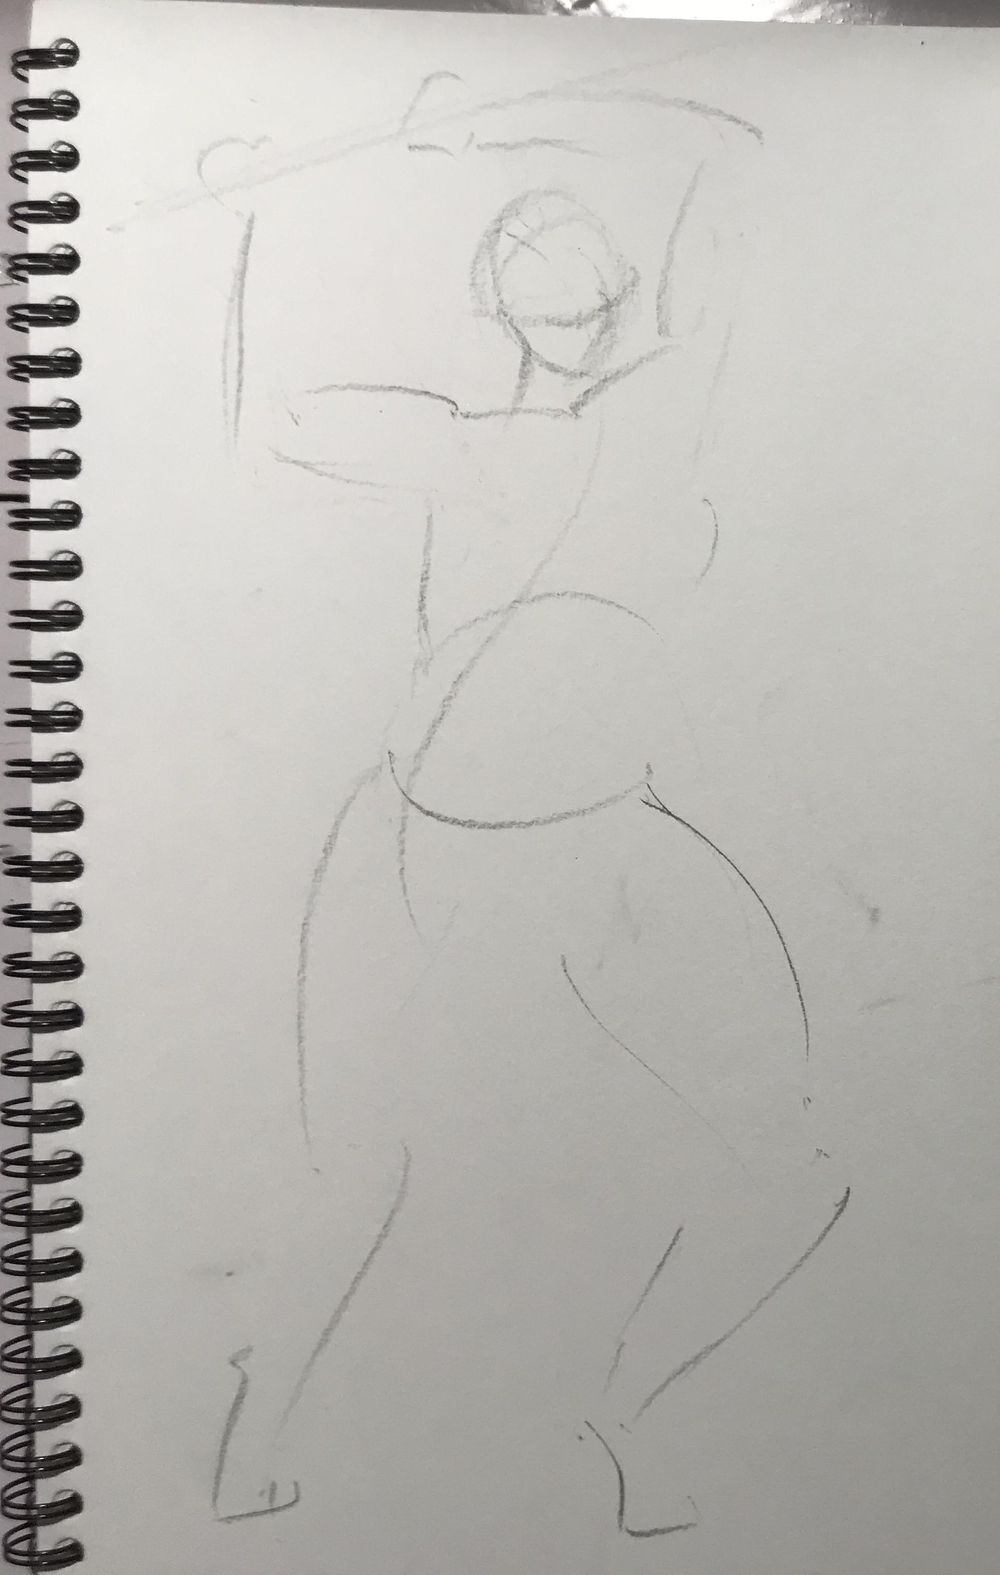 Gesture drawing assignment - image 5 - student project